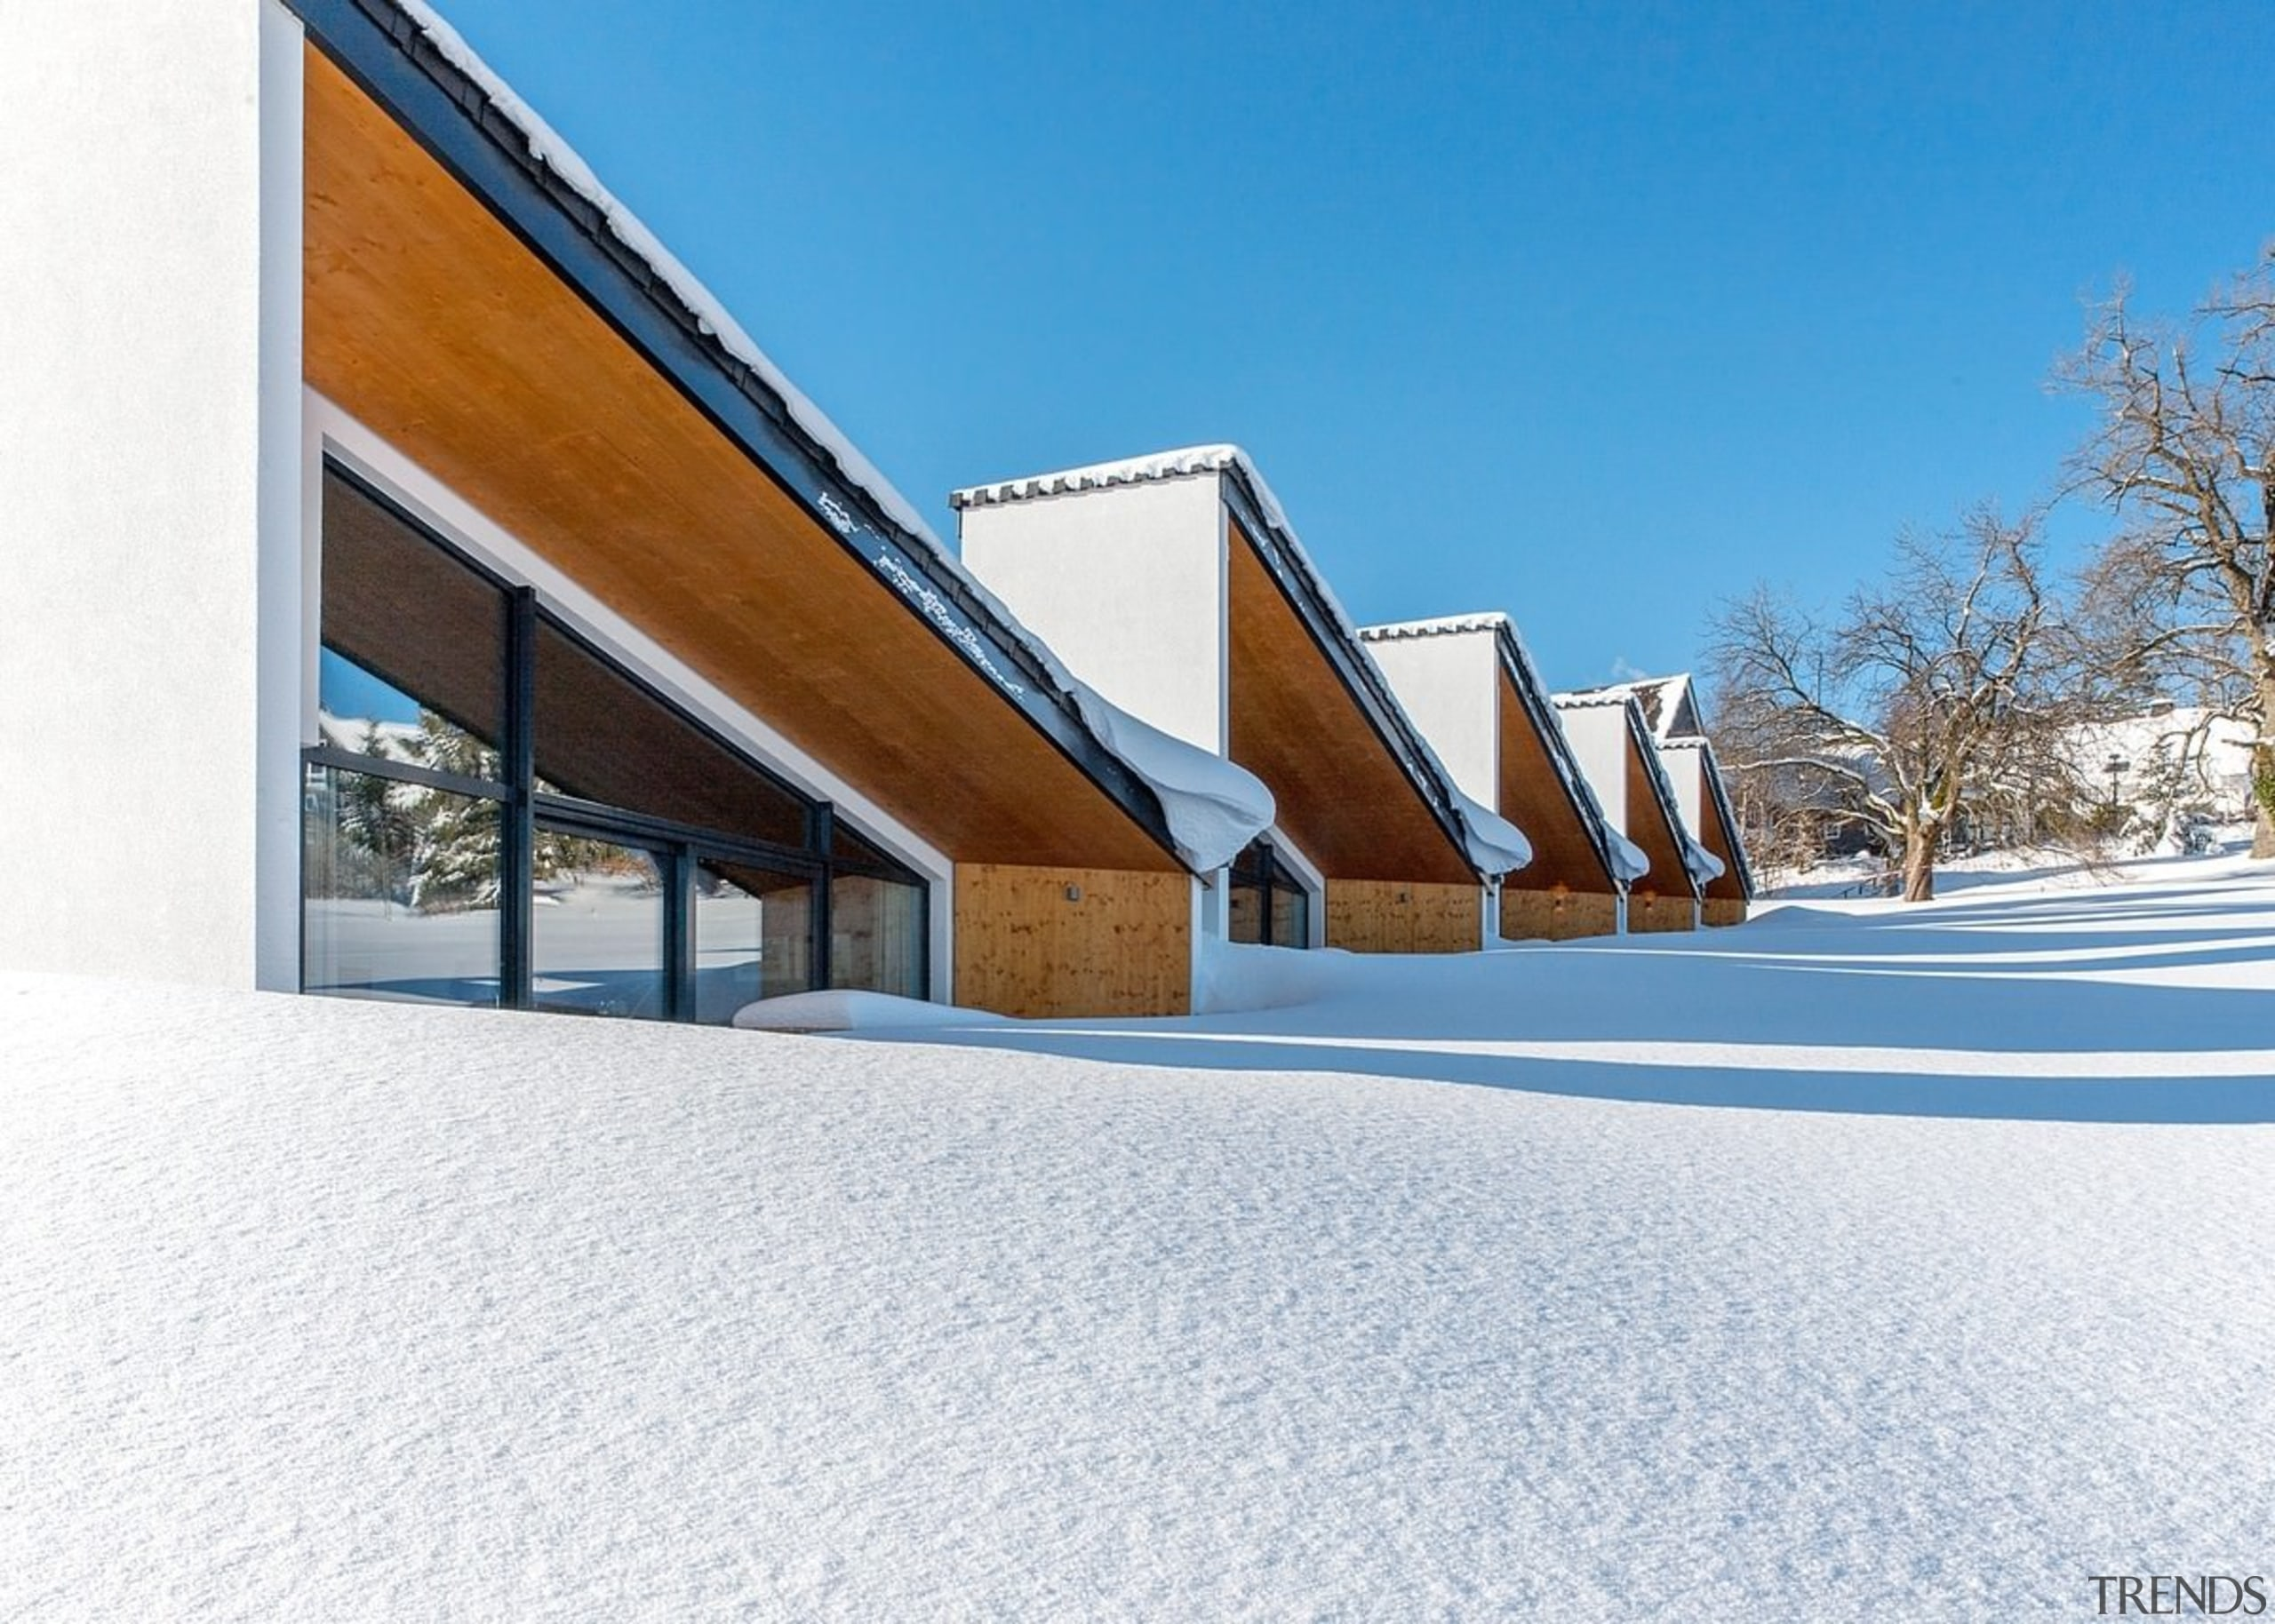 Fresh snowfall - Fresh snowfall - architecture   architecture, building, facade, home, house, property, real estate, roof, sky, snow, winter, white, teal